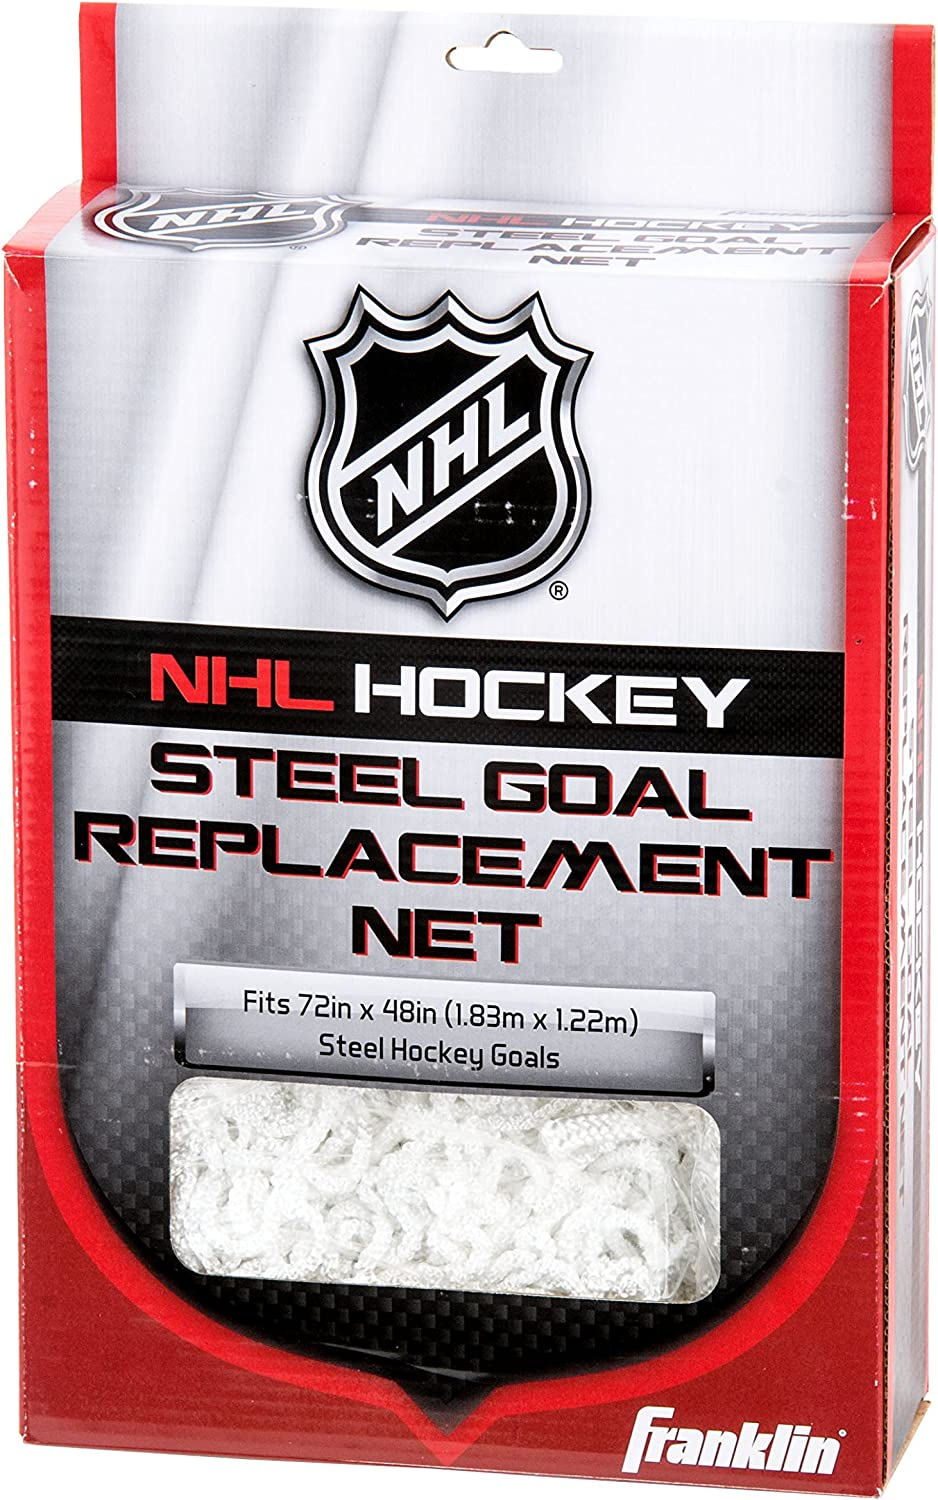 Franklin Sports Hockey Goal Replacement Net - 72 x 48 Inch - NHL - White : Sports & Outdoors